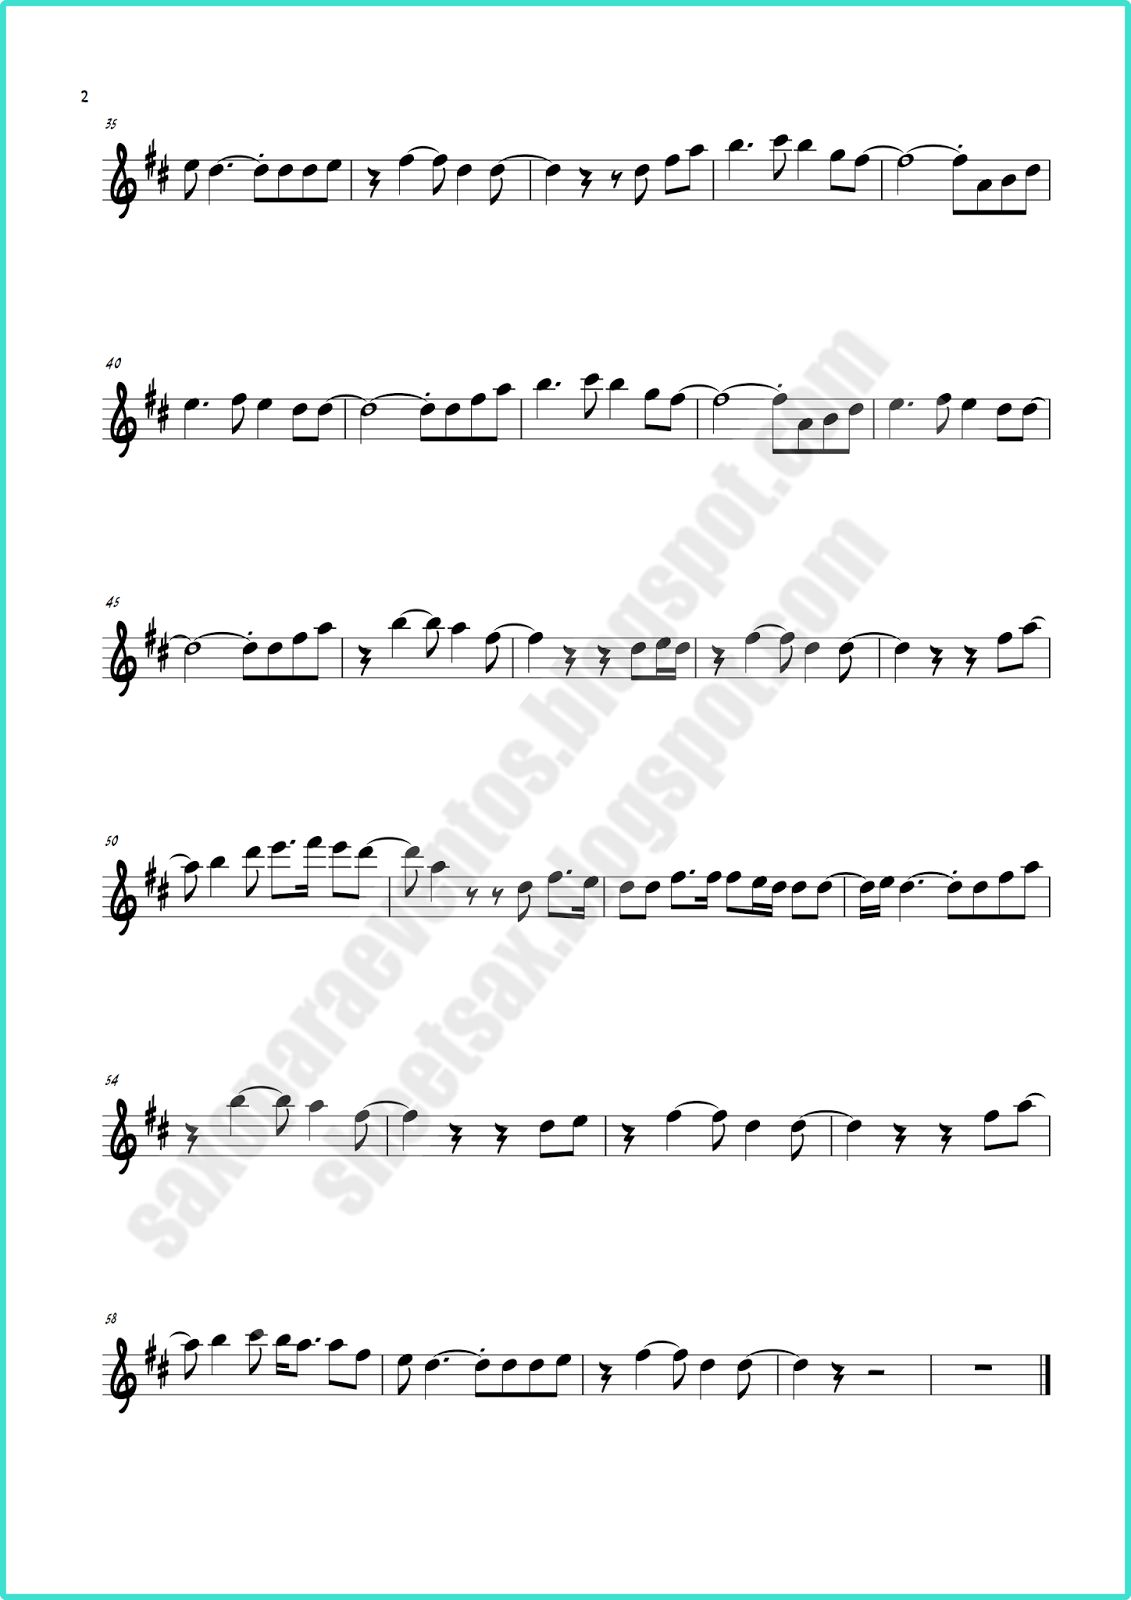 Stay With Me by Sam Smith (Free sheet music and playalong) | Free